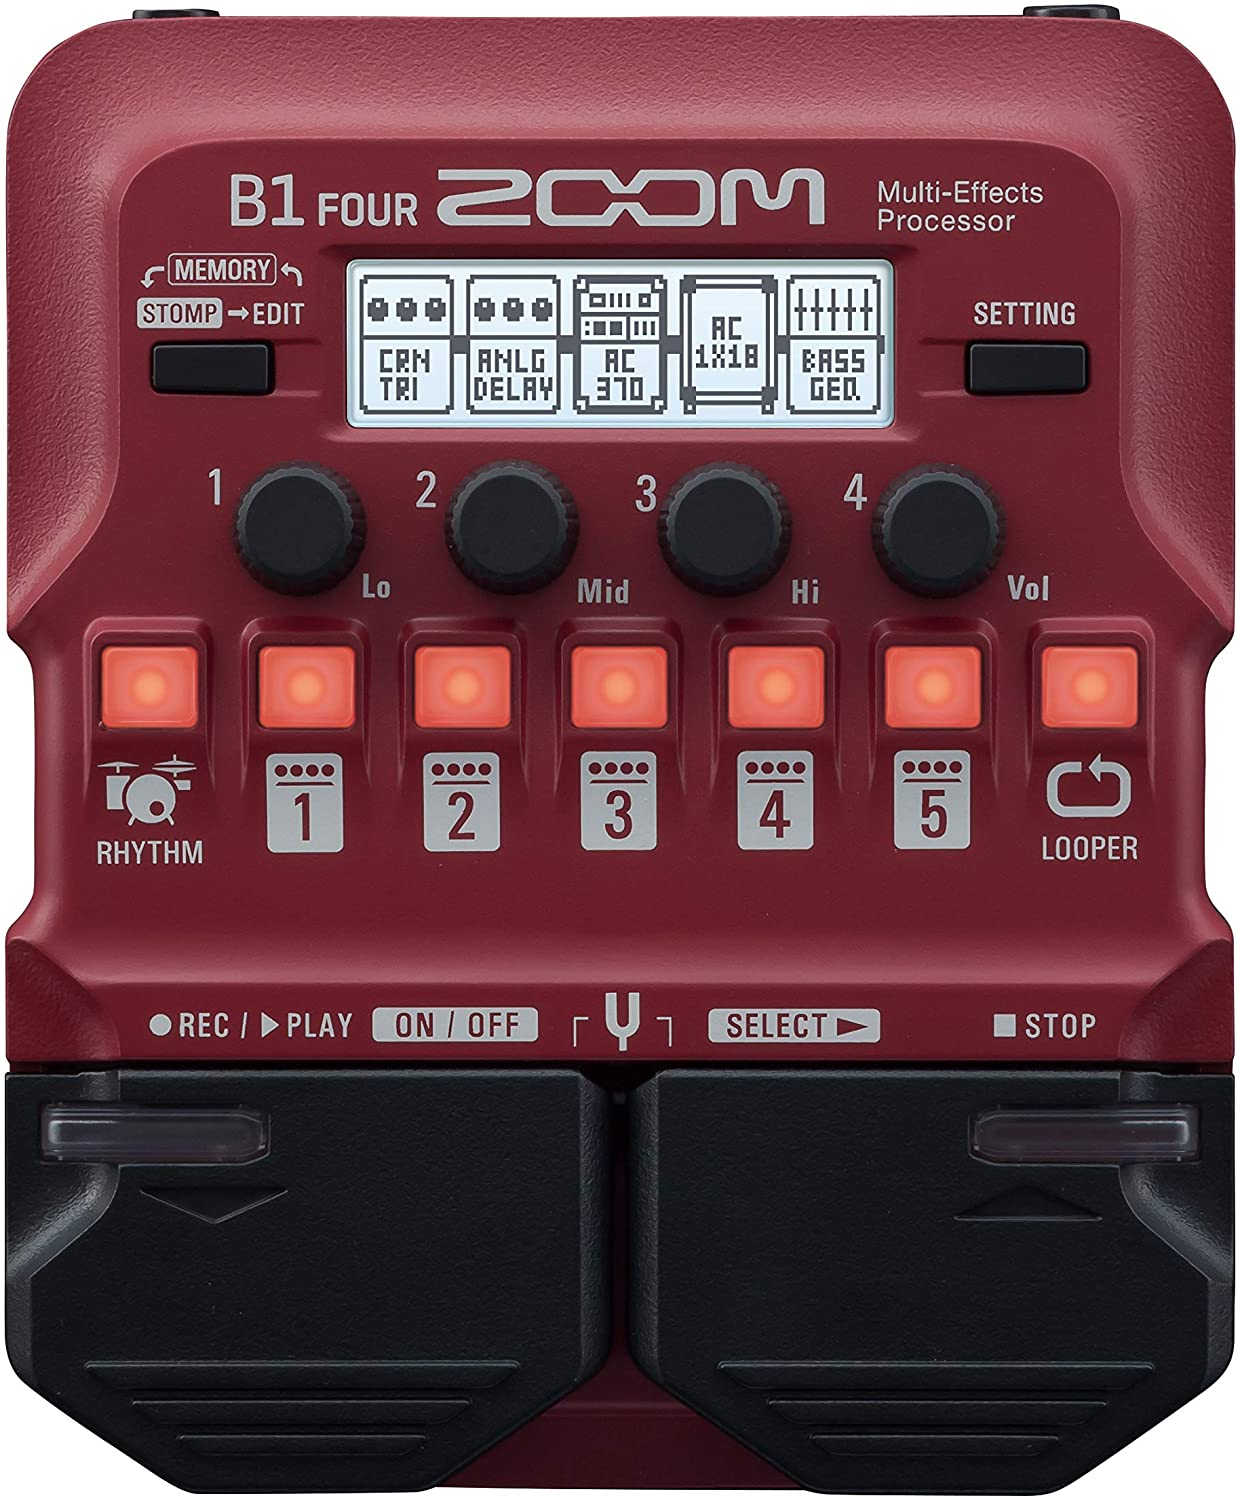 Zoom B1 FOUR Bass Guitar Multi-Effects Processor Pedal, With 60+ Built-in effects, Amp Modeling, Looper, Rhythm Section, Tuner, Battery Powered